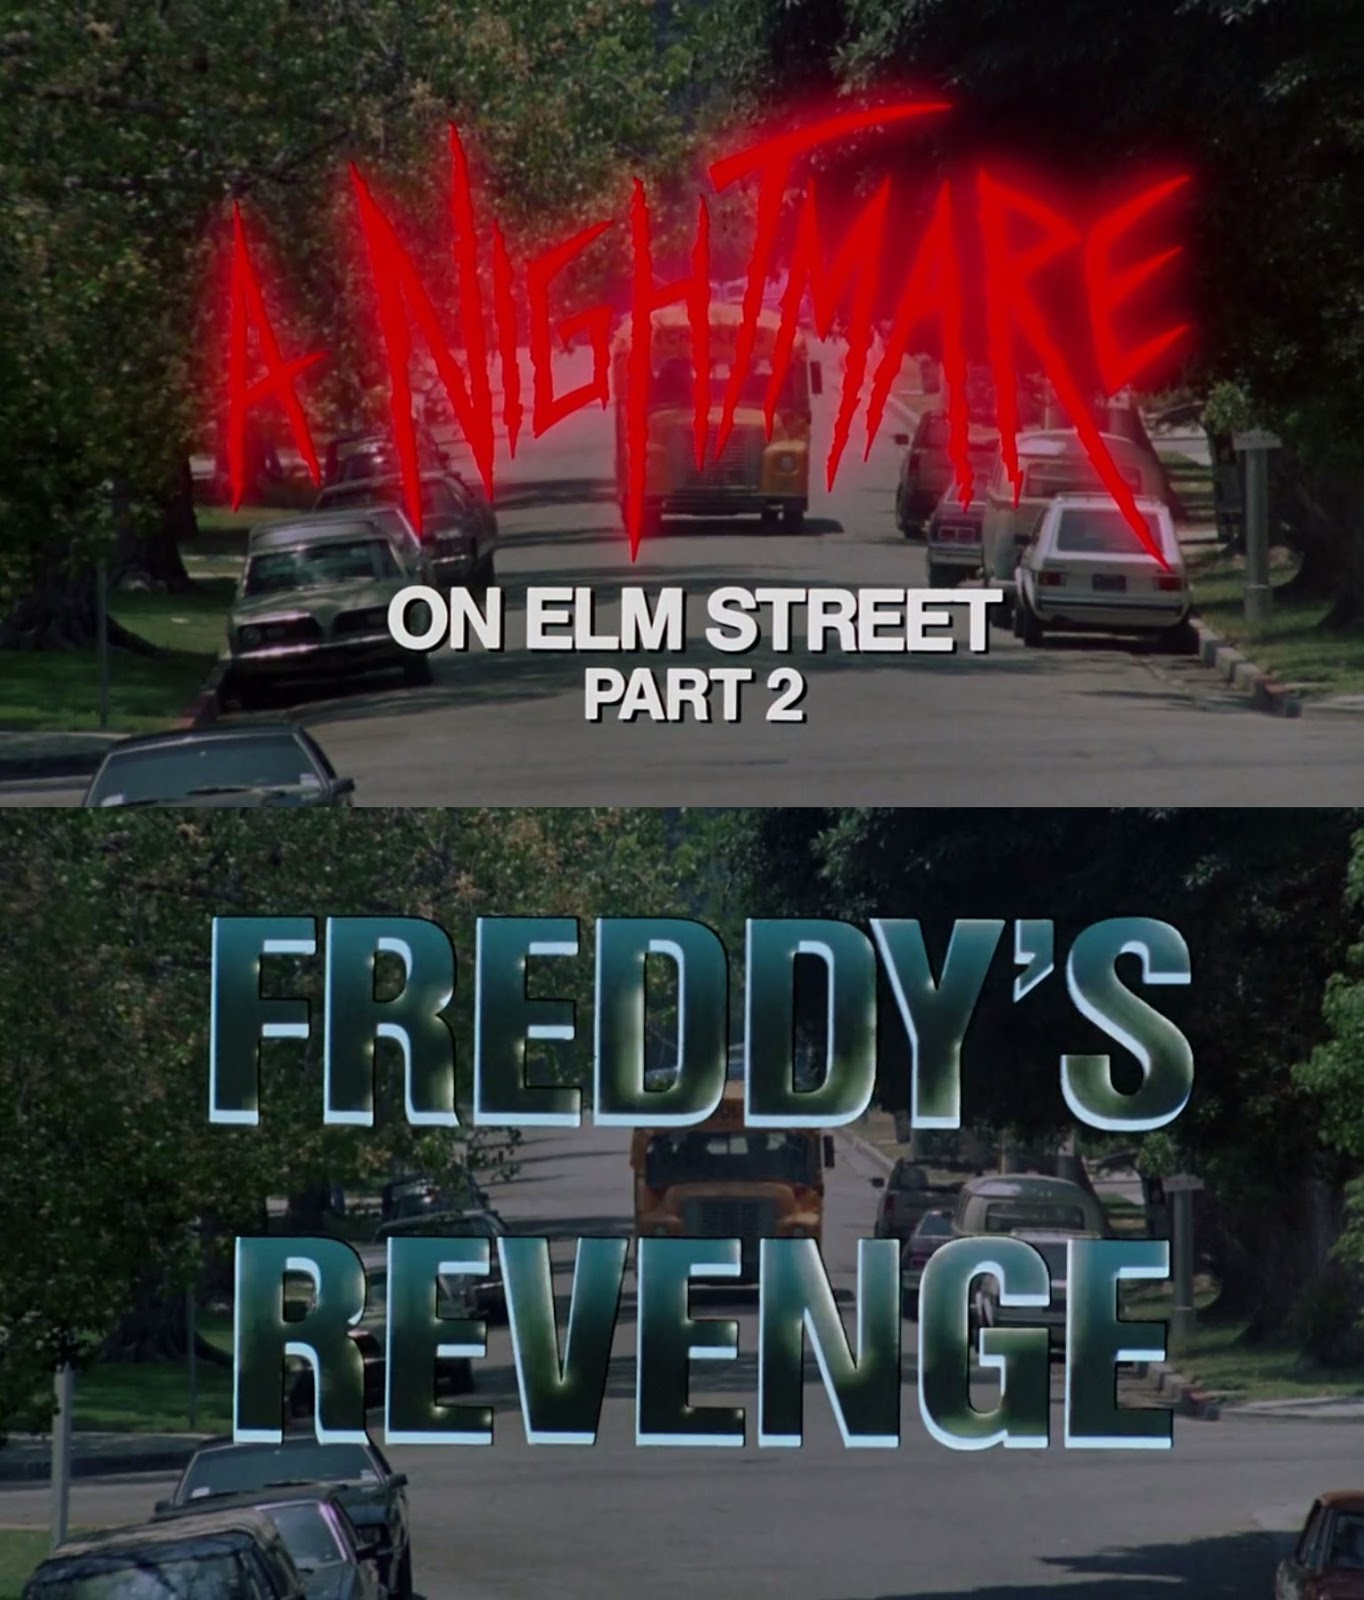 a nightmare title The world was introduced to wes craven's freddy krueger, (portrayed by robert englund), in 1984 with a nightmare on elm street krueger was a former child killer seeking revenge against the parents who burned him by haunting the dreams of their teenage children and killing them in their dreams.